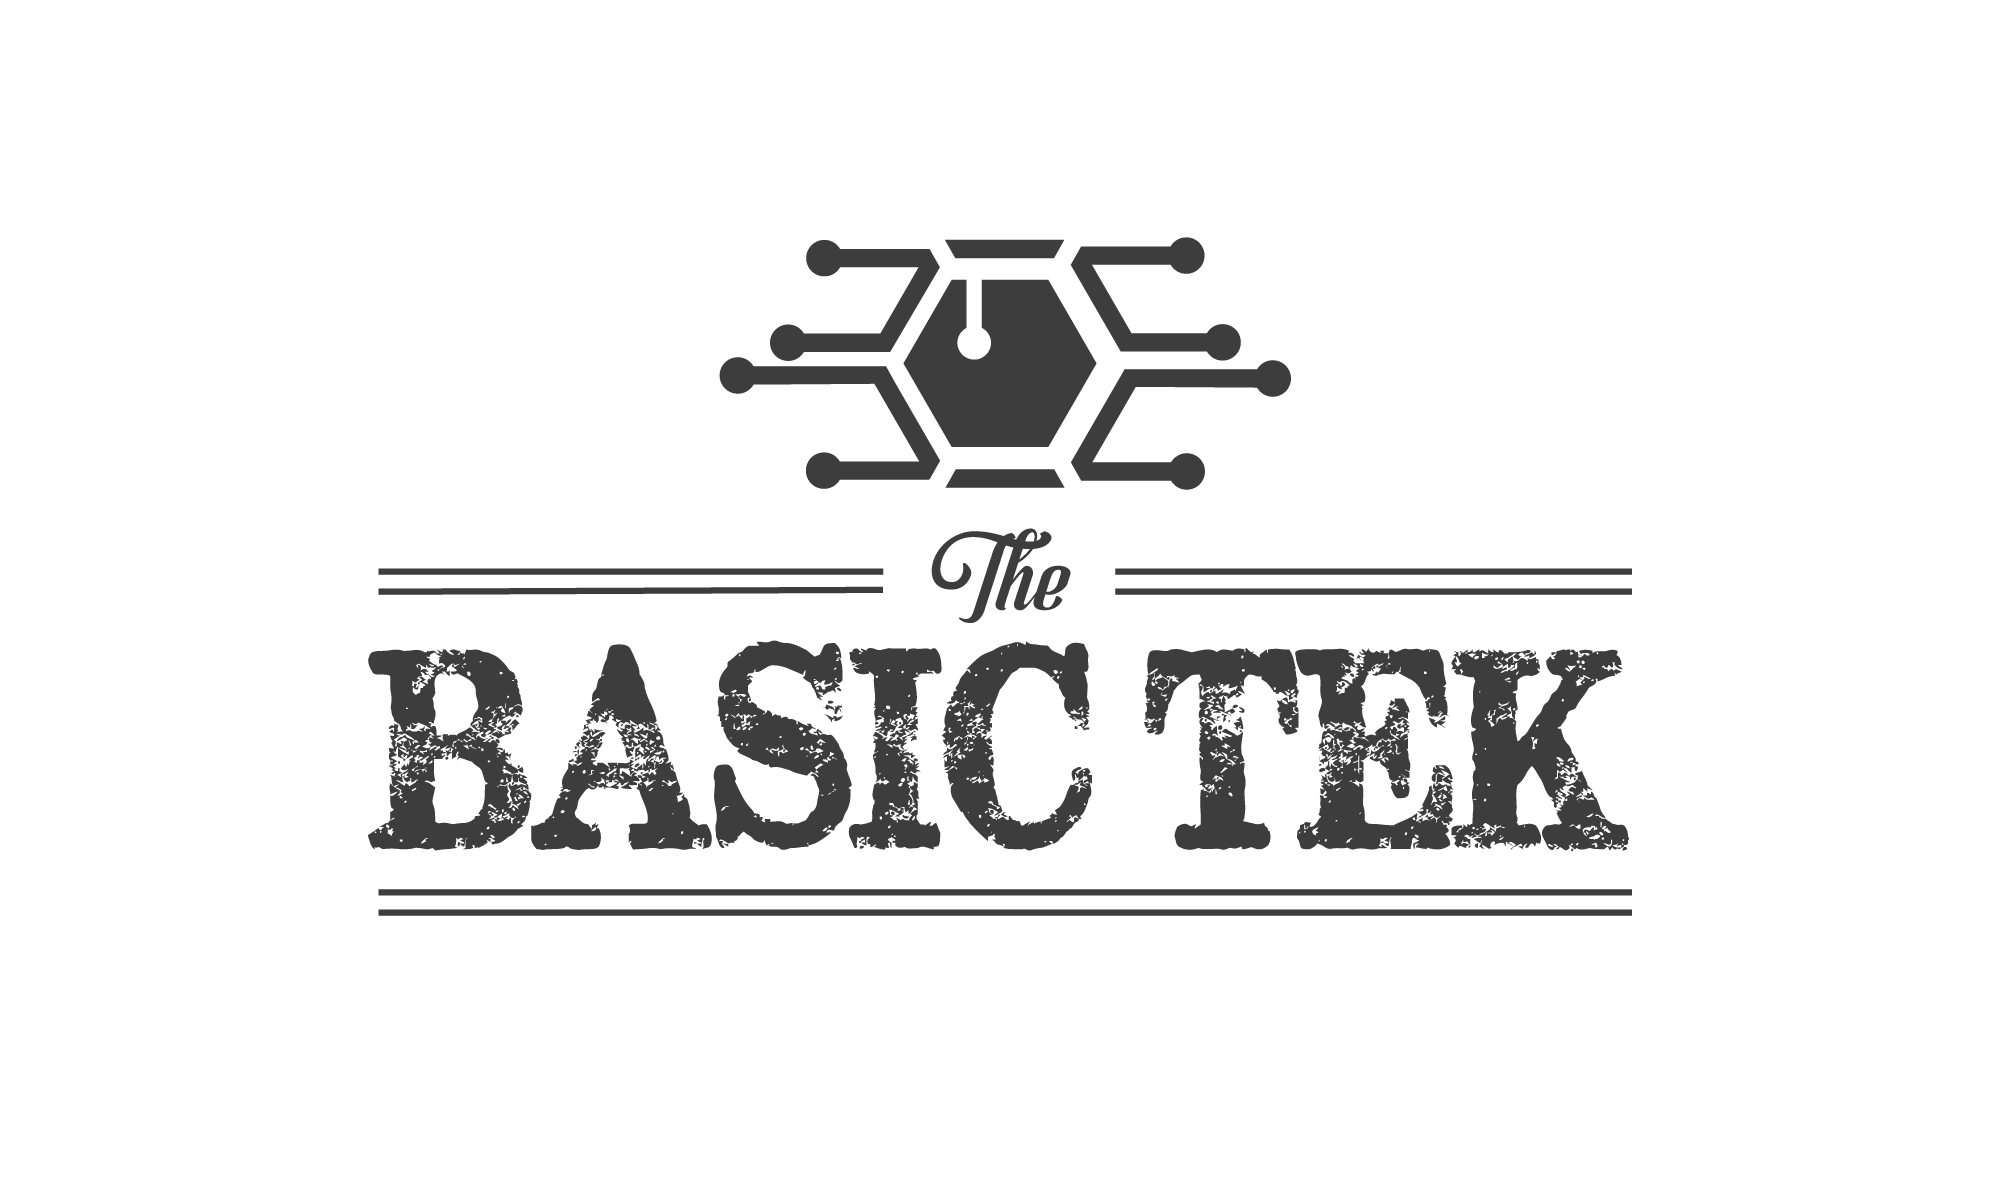 A Basic Tech blog